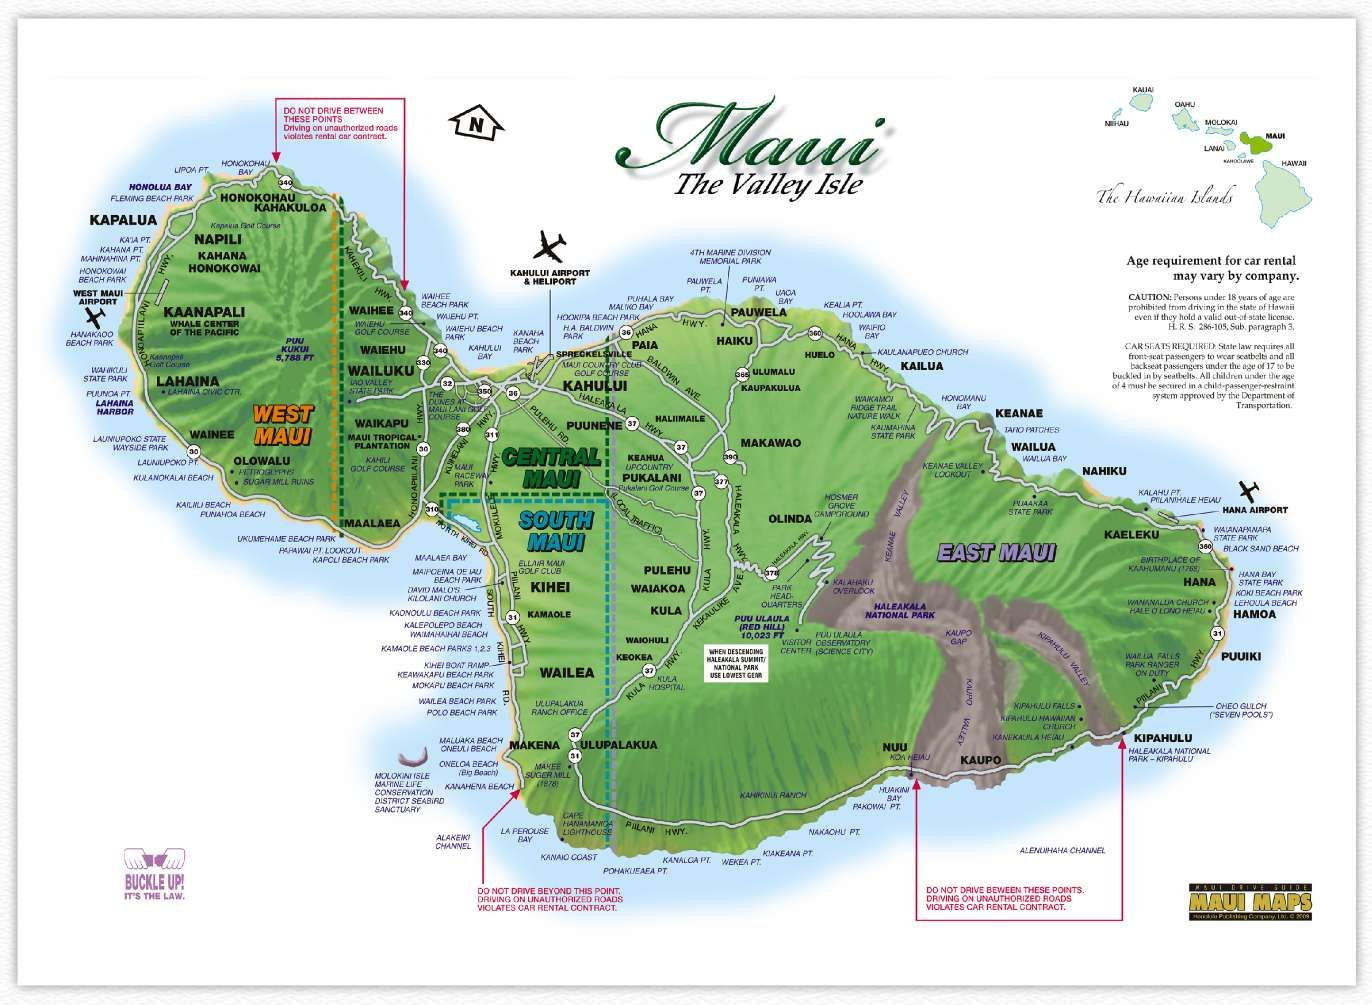 Hawaii Map Maui.30 Days To Hawaii And The Winner Is Hawaii Pinterest Maui